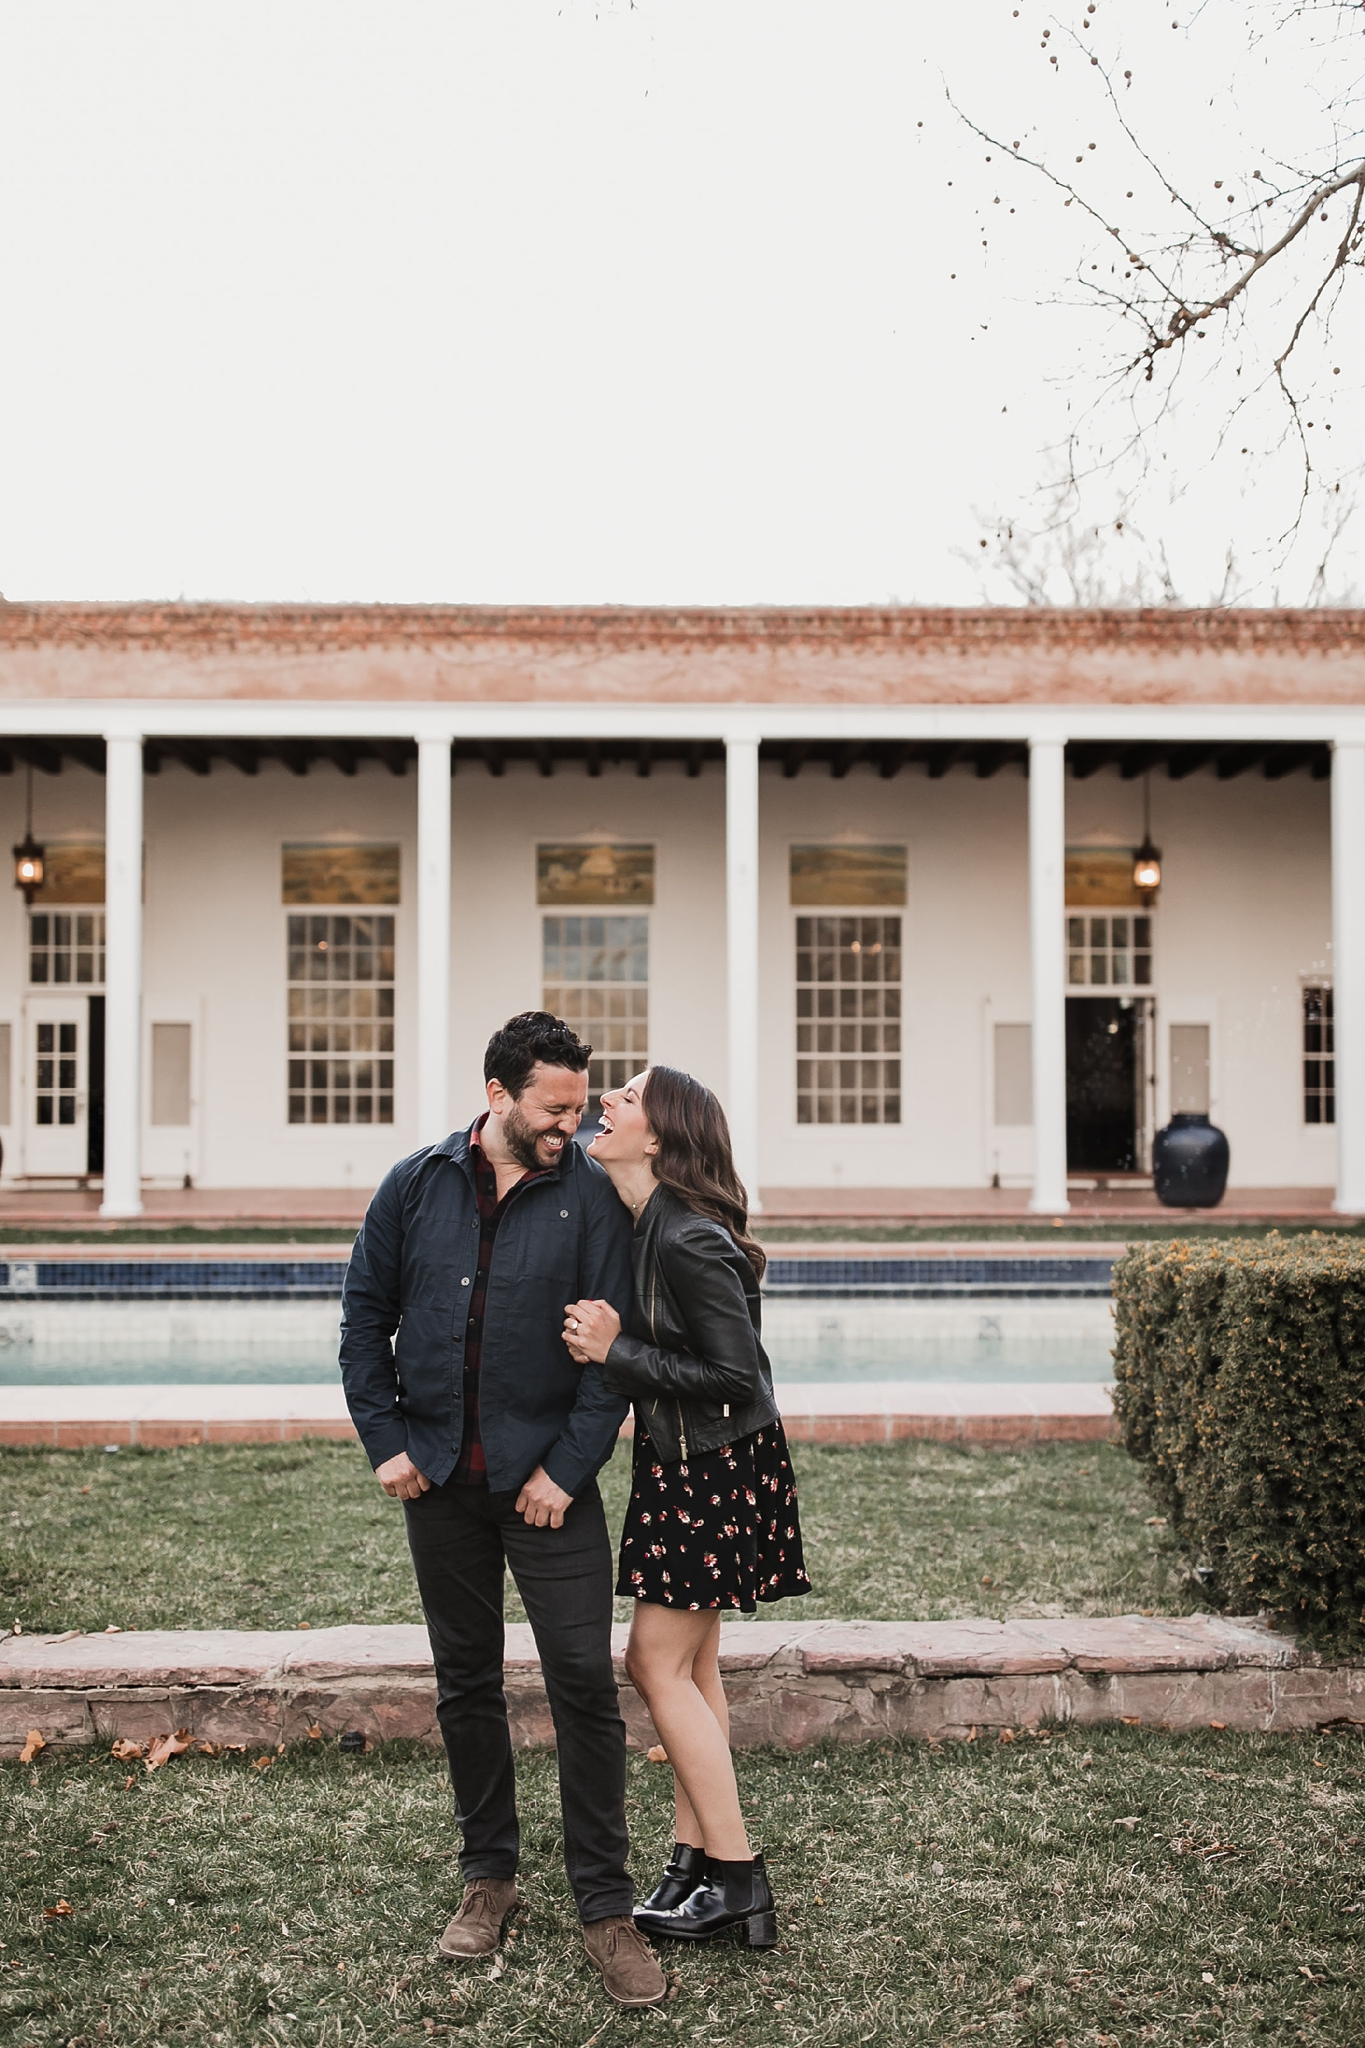 Alicia+lucia+photography+-+albuquerque+wedding+photographer+-+santa+fe+wedding+photography+-+new+mexico+wedding+photographer+-+new+mexico+wedding+-+new+mexico+engagement+-+los+poblanos+engagement+-+los+poblanos+wedding+-+fall+wedding_0026.jpg